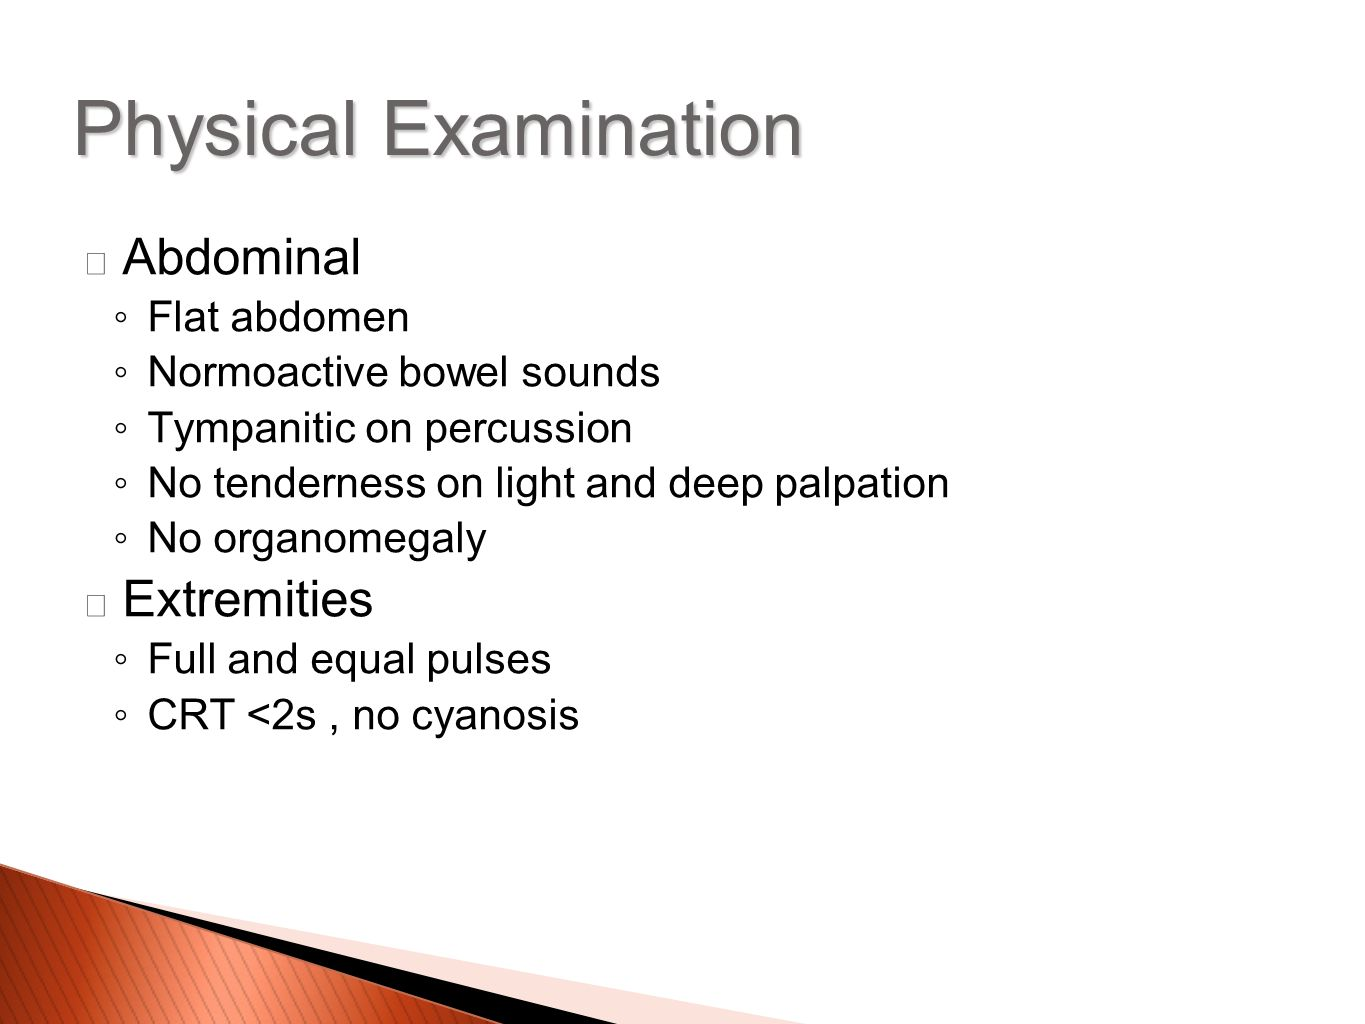 Abdominal ◦Flat abdomen ◦Normoactive bowel sounds ◦Tympanitic on percussion ◦No tenderness on light and deep palpation ◦No organomegaly Extremities ◦Full and equal pulses ◦CRT <2s, no cyanosis Physical Examination